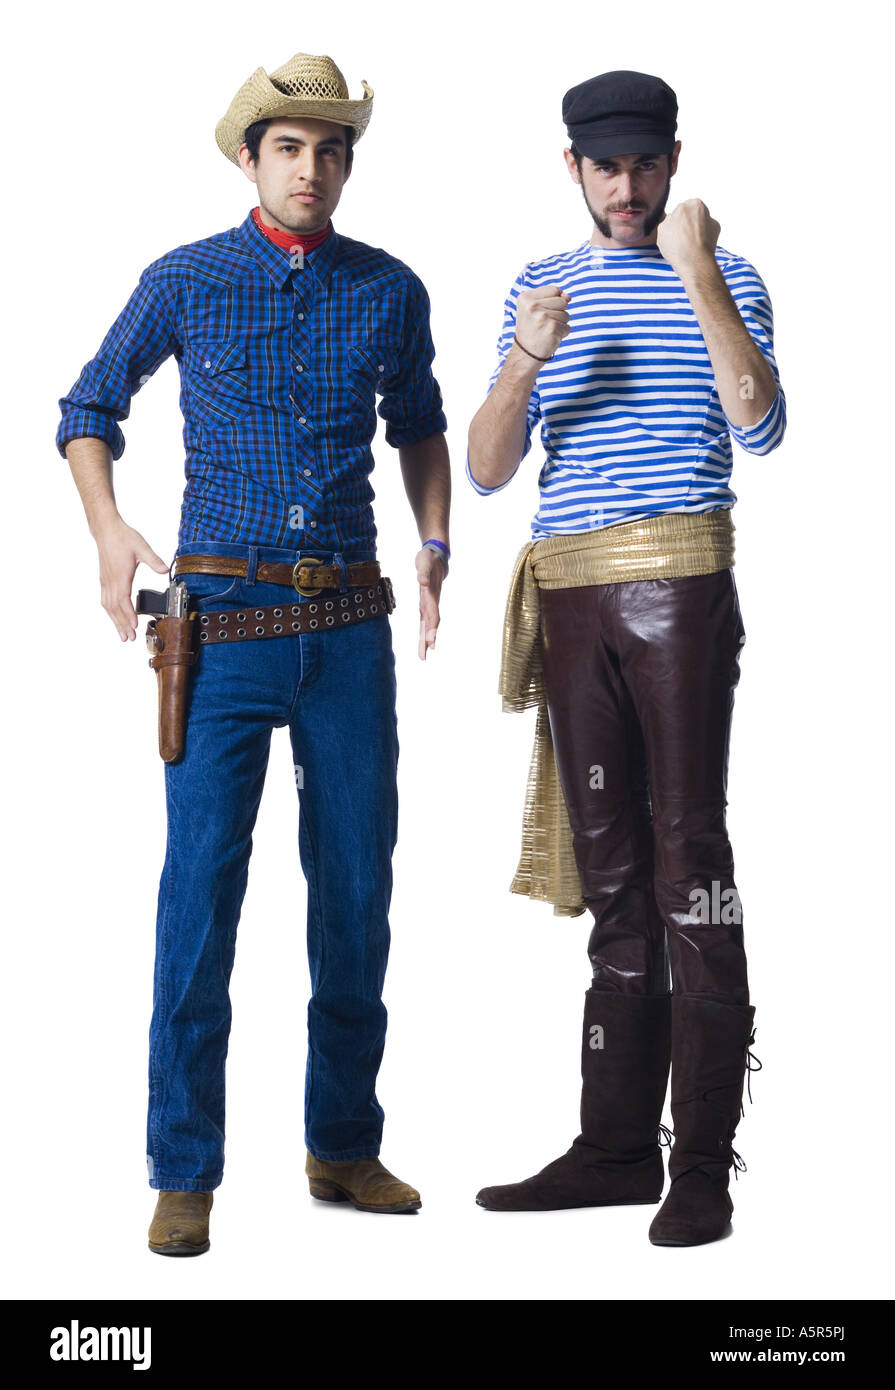 Man In Cowboy Costume And Man With Leather Pants And Waist Sash With